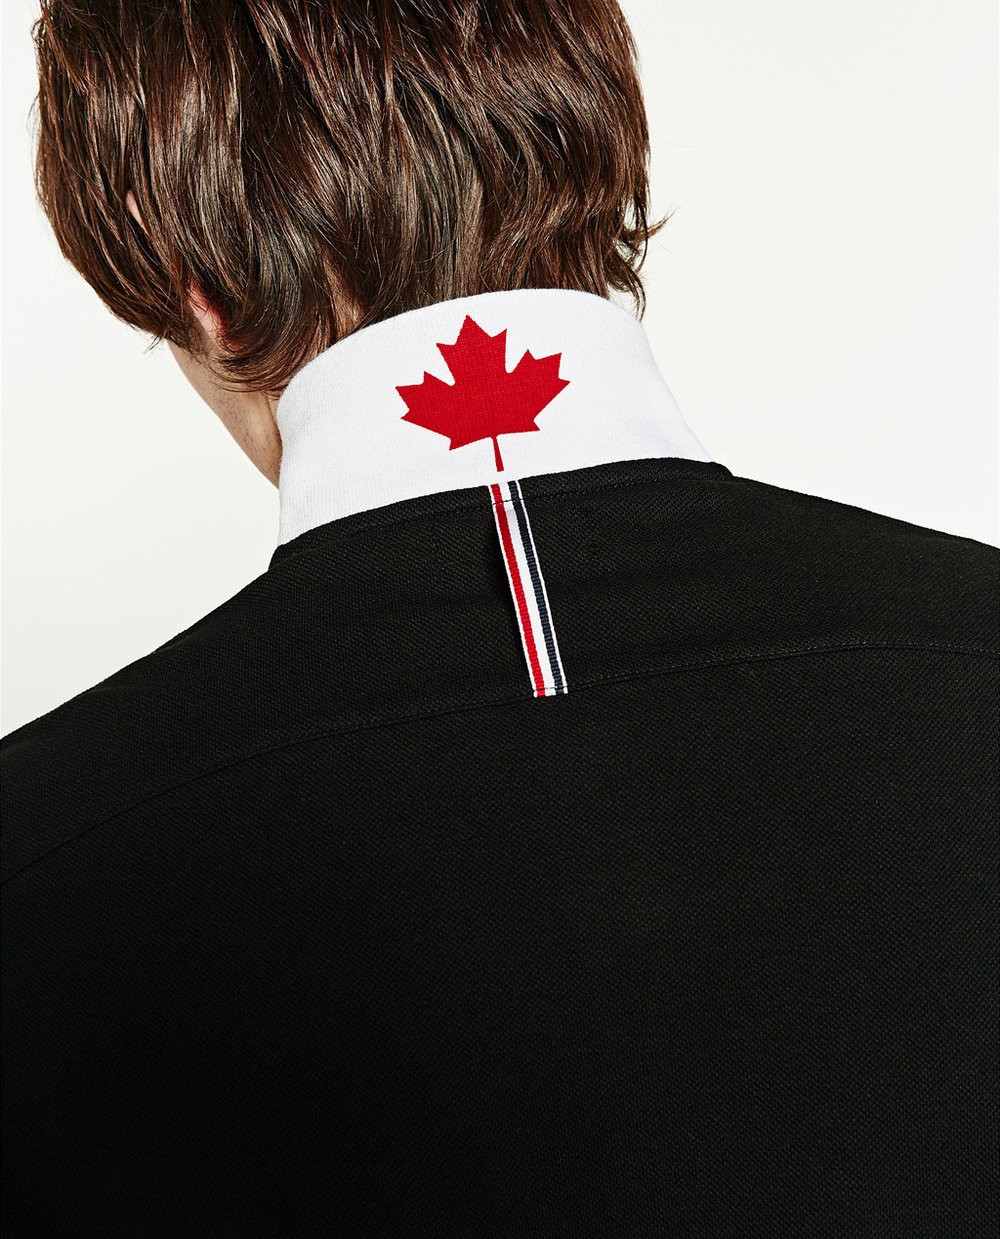 ZARA embroidered shirt Canadian maple leaf detail